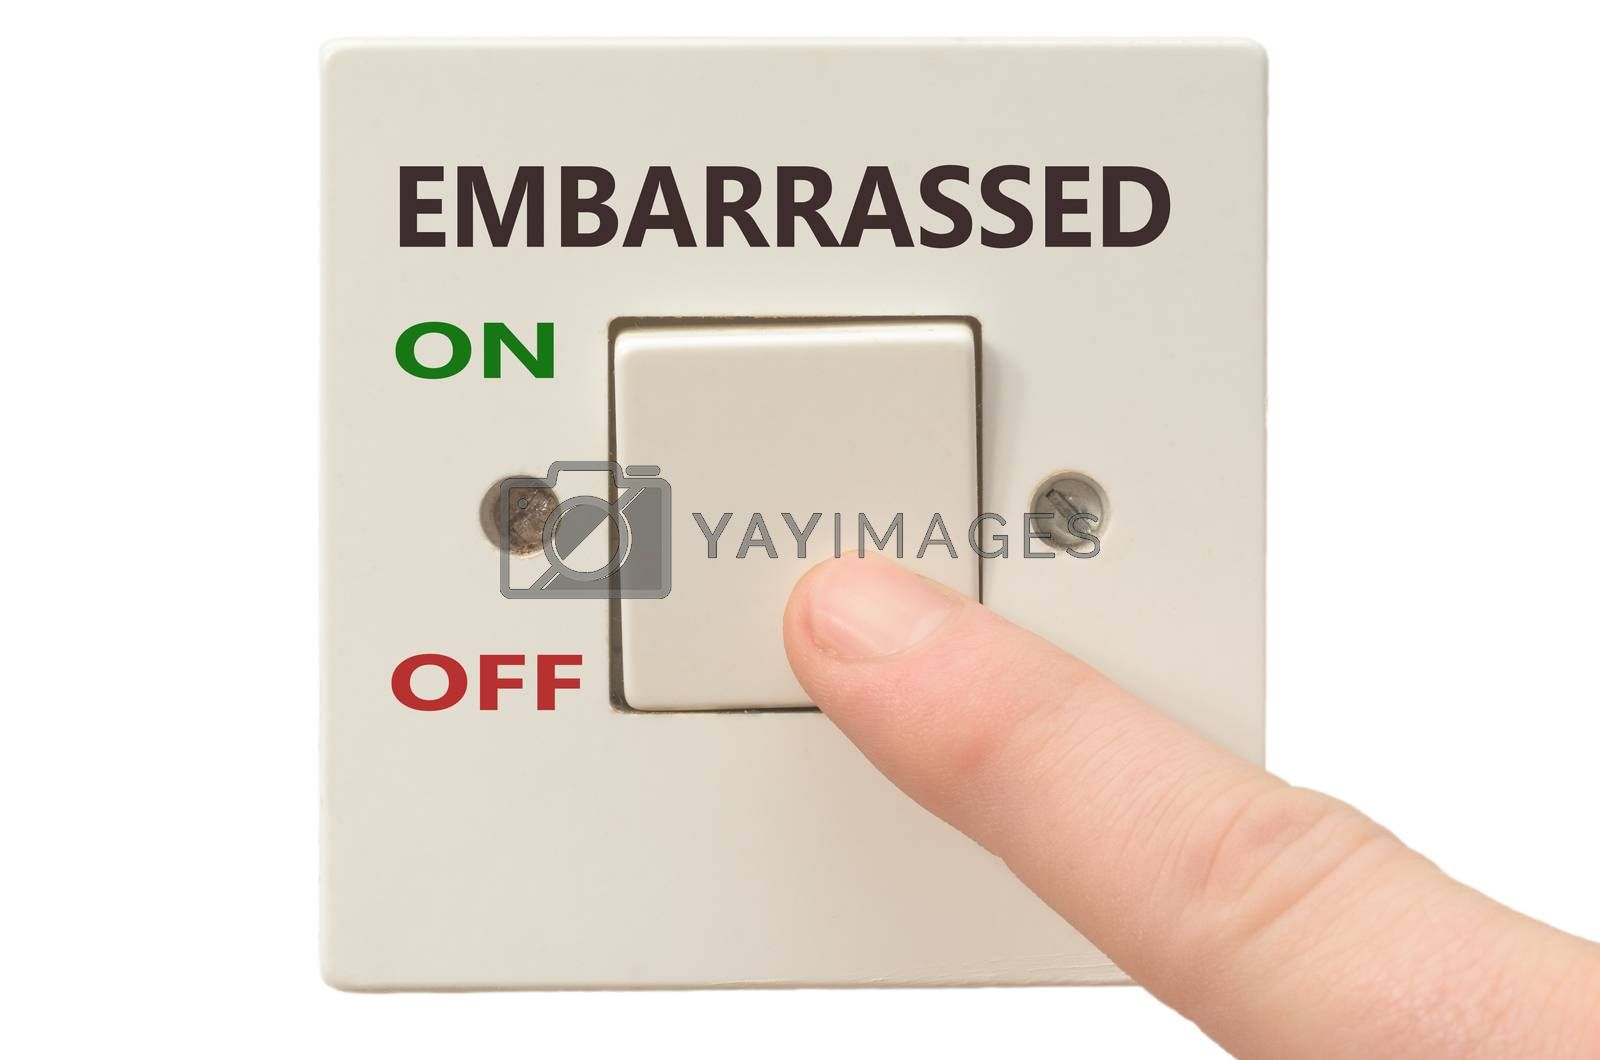 Turning off Embarrassed with finger on electrical switch